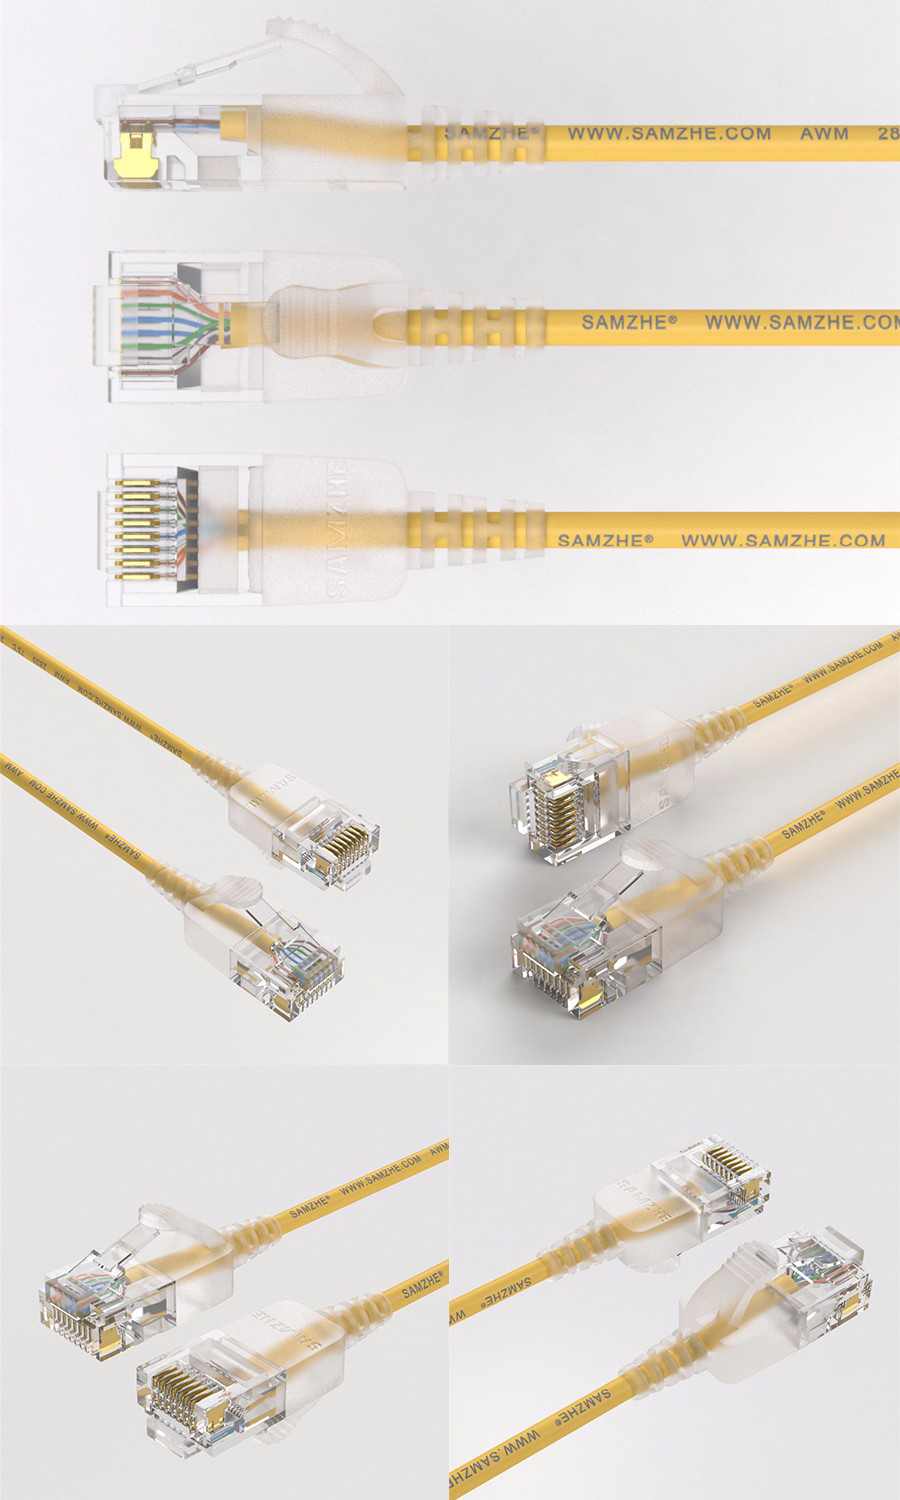 SAMZHE 0.5~5M 10Gbps Ultrafine CAT6A Yellow Ethernet Patch Cable Slim LAN Networking Cable